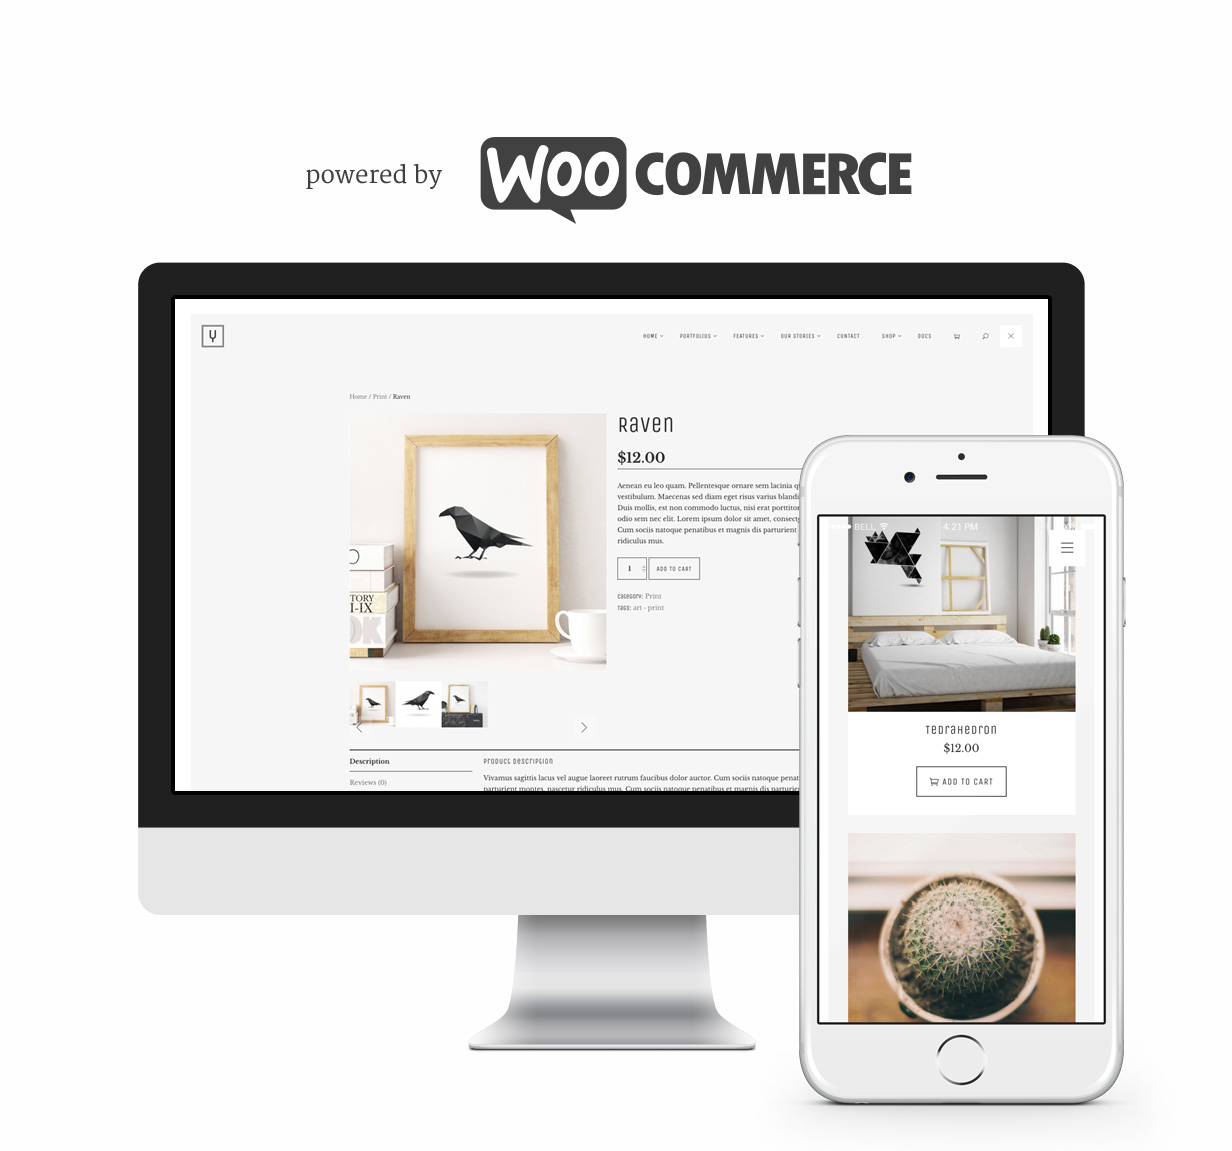 Powered by WooCommerce.